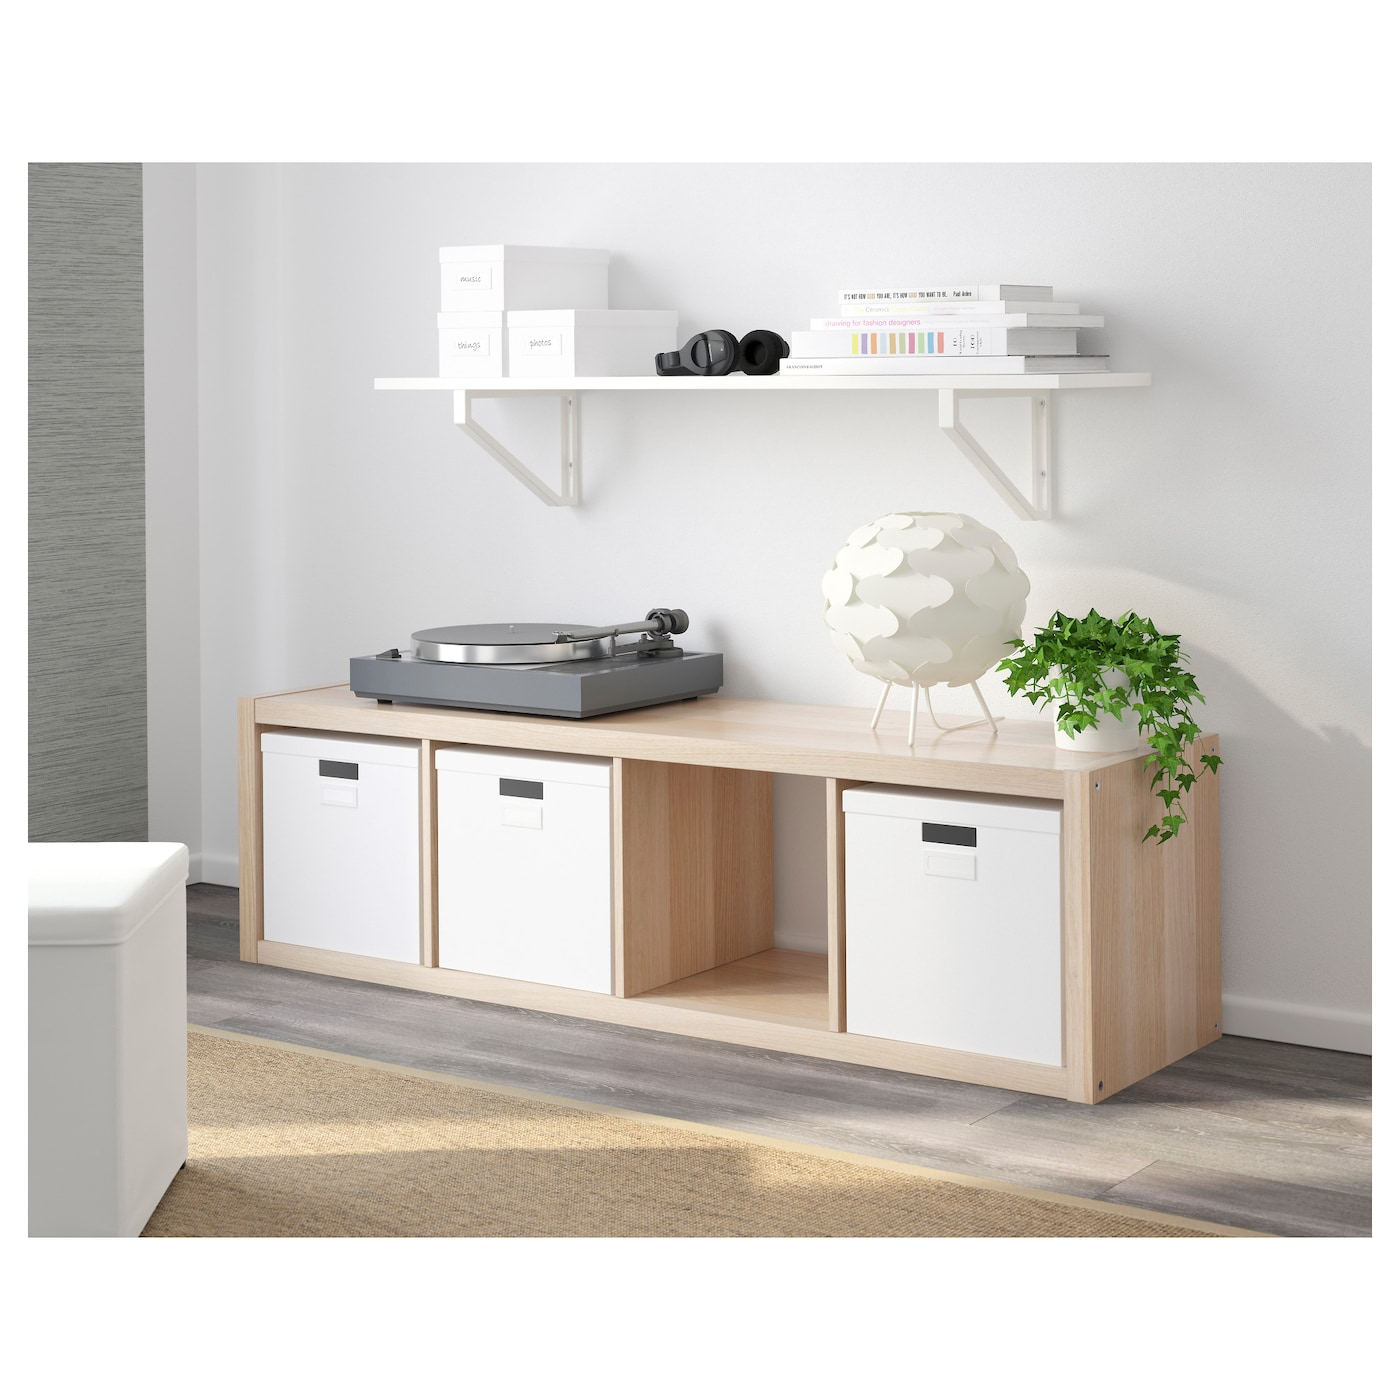 kallax shelving unit white stained oak effect 42 x 147 cm ikea. Black Bedroom Furniture Sets. Home Design Ideas